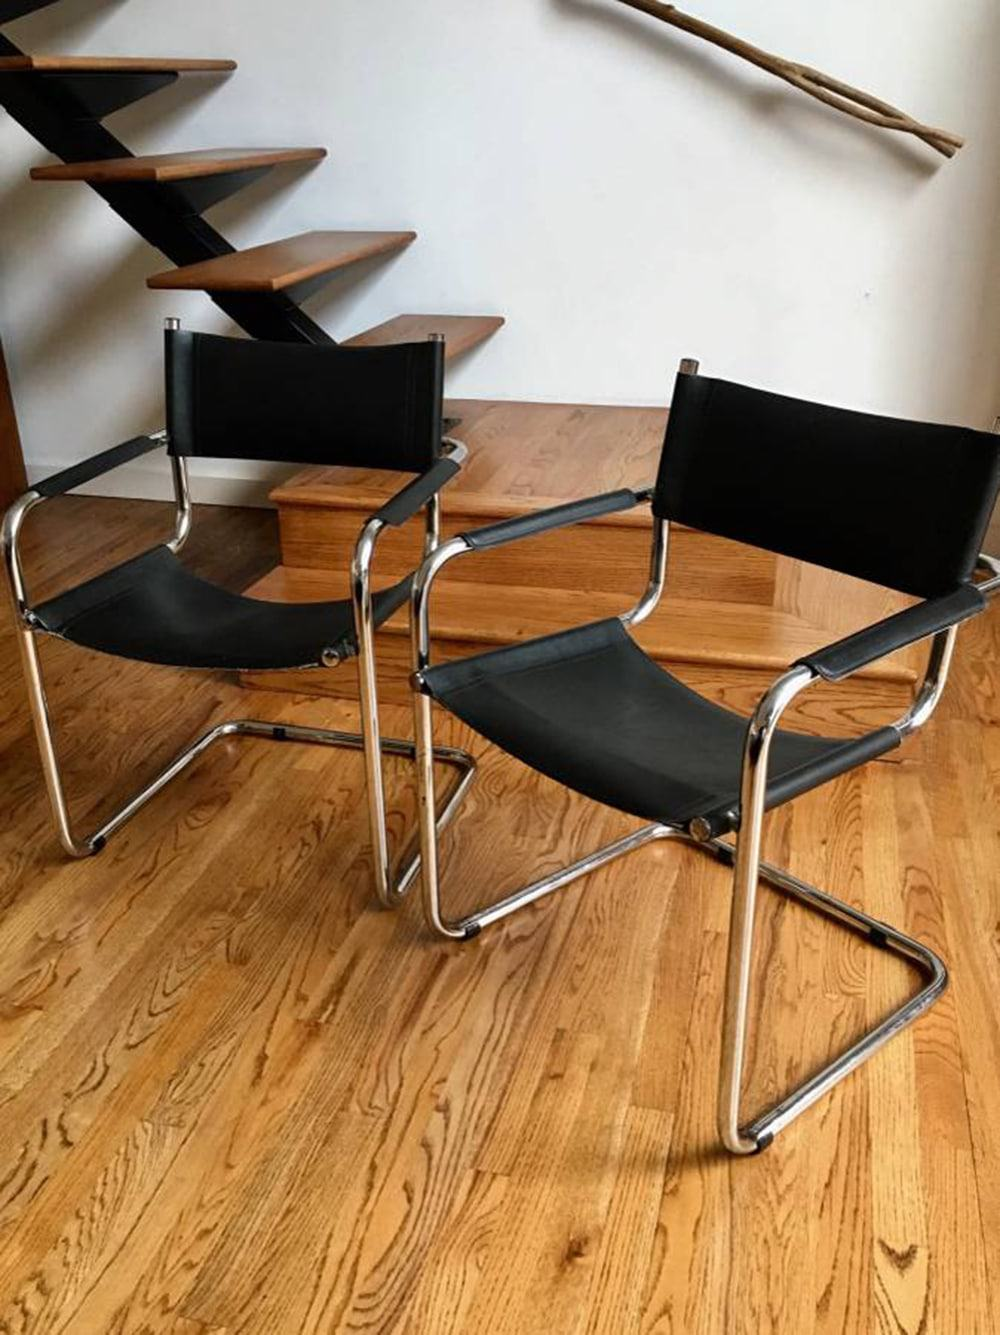 50 Bentwood Chairs 10 Stools Free Bookcases The Best Dallas Craigslist Finds Right Now Emily Henderson Find new employment or work. 50 bentwood chairs 10 stools free